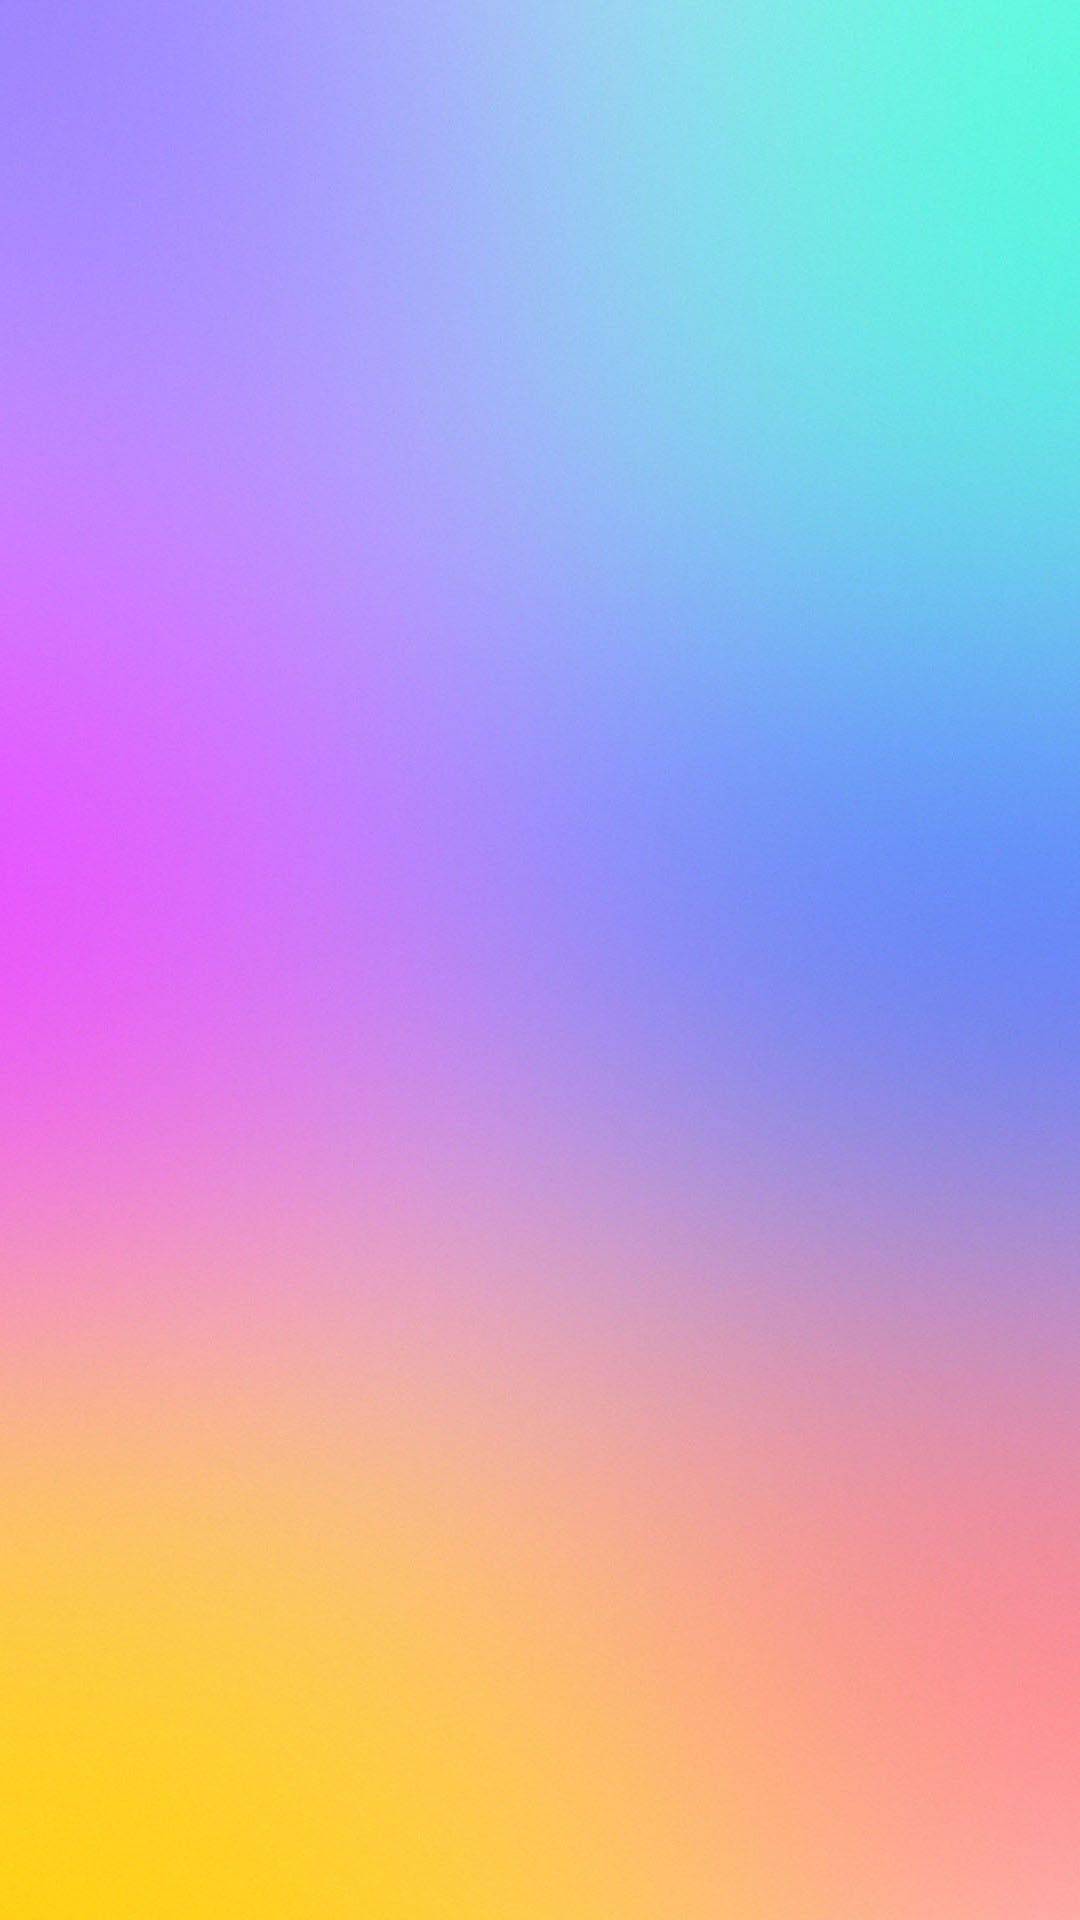 Light Pink Background With Heart